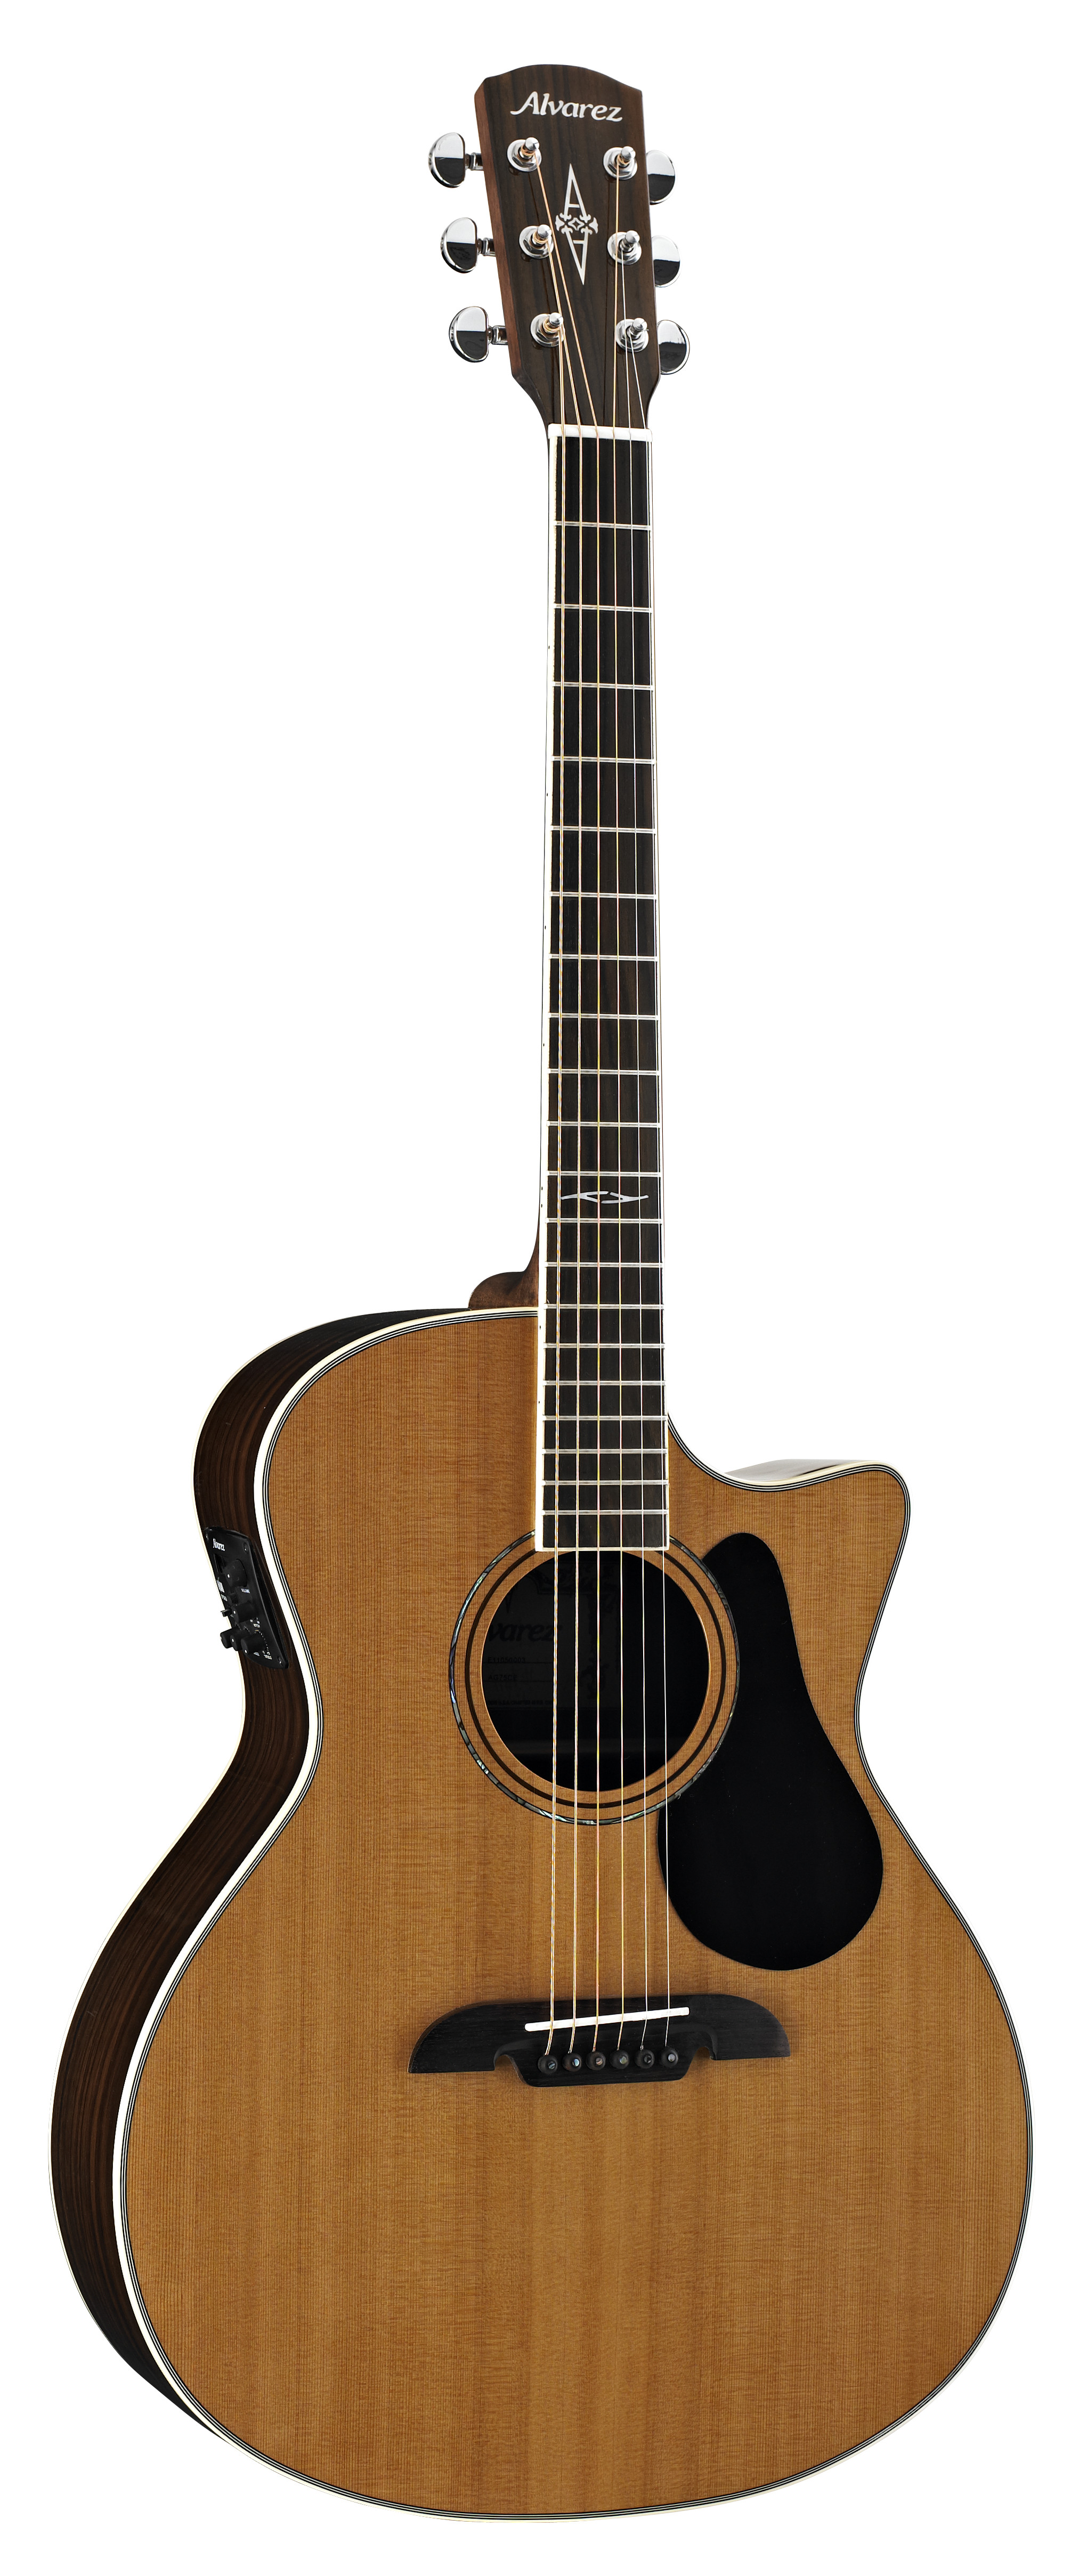 Guitar clipart acoustic and electric free library Acoustic/Electric Guitar   Clipart Panda - Free Clipart Images free library